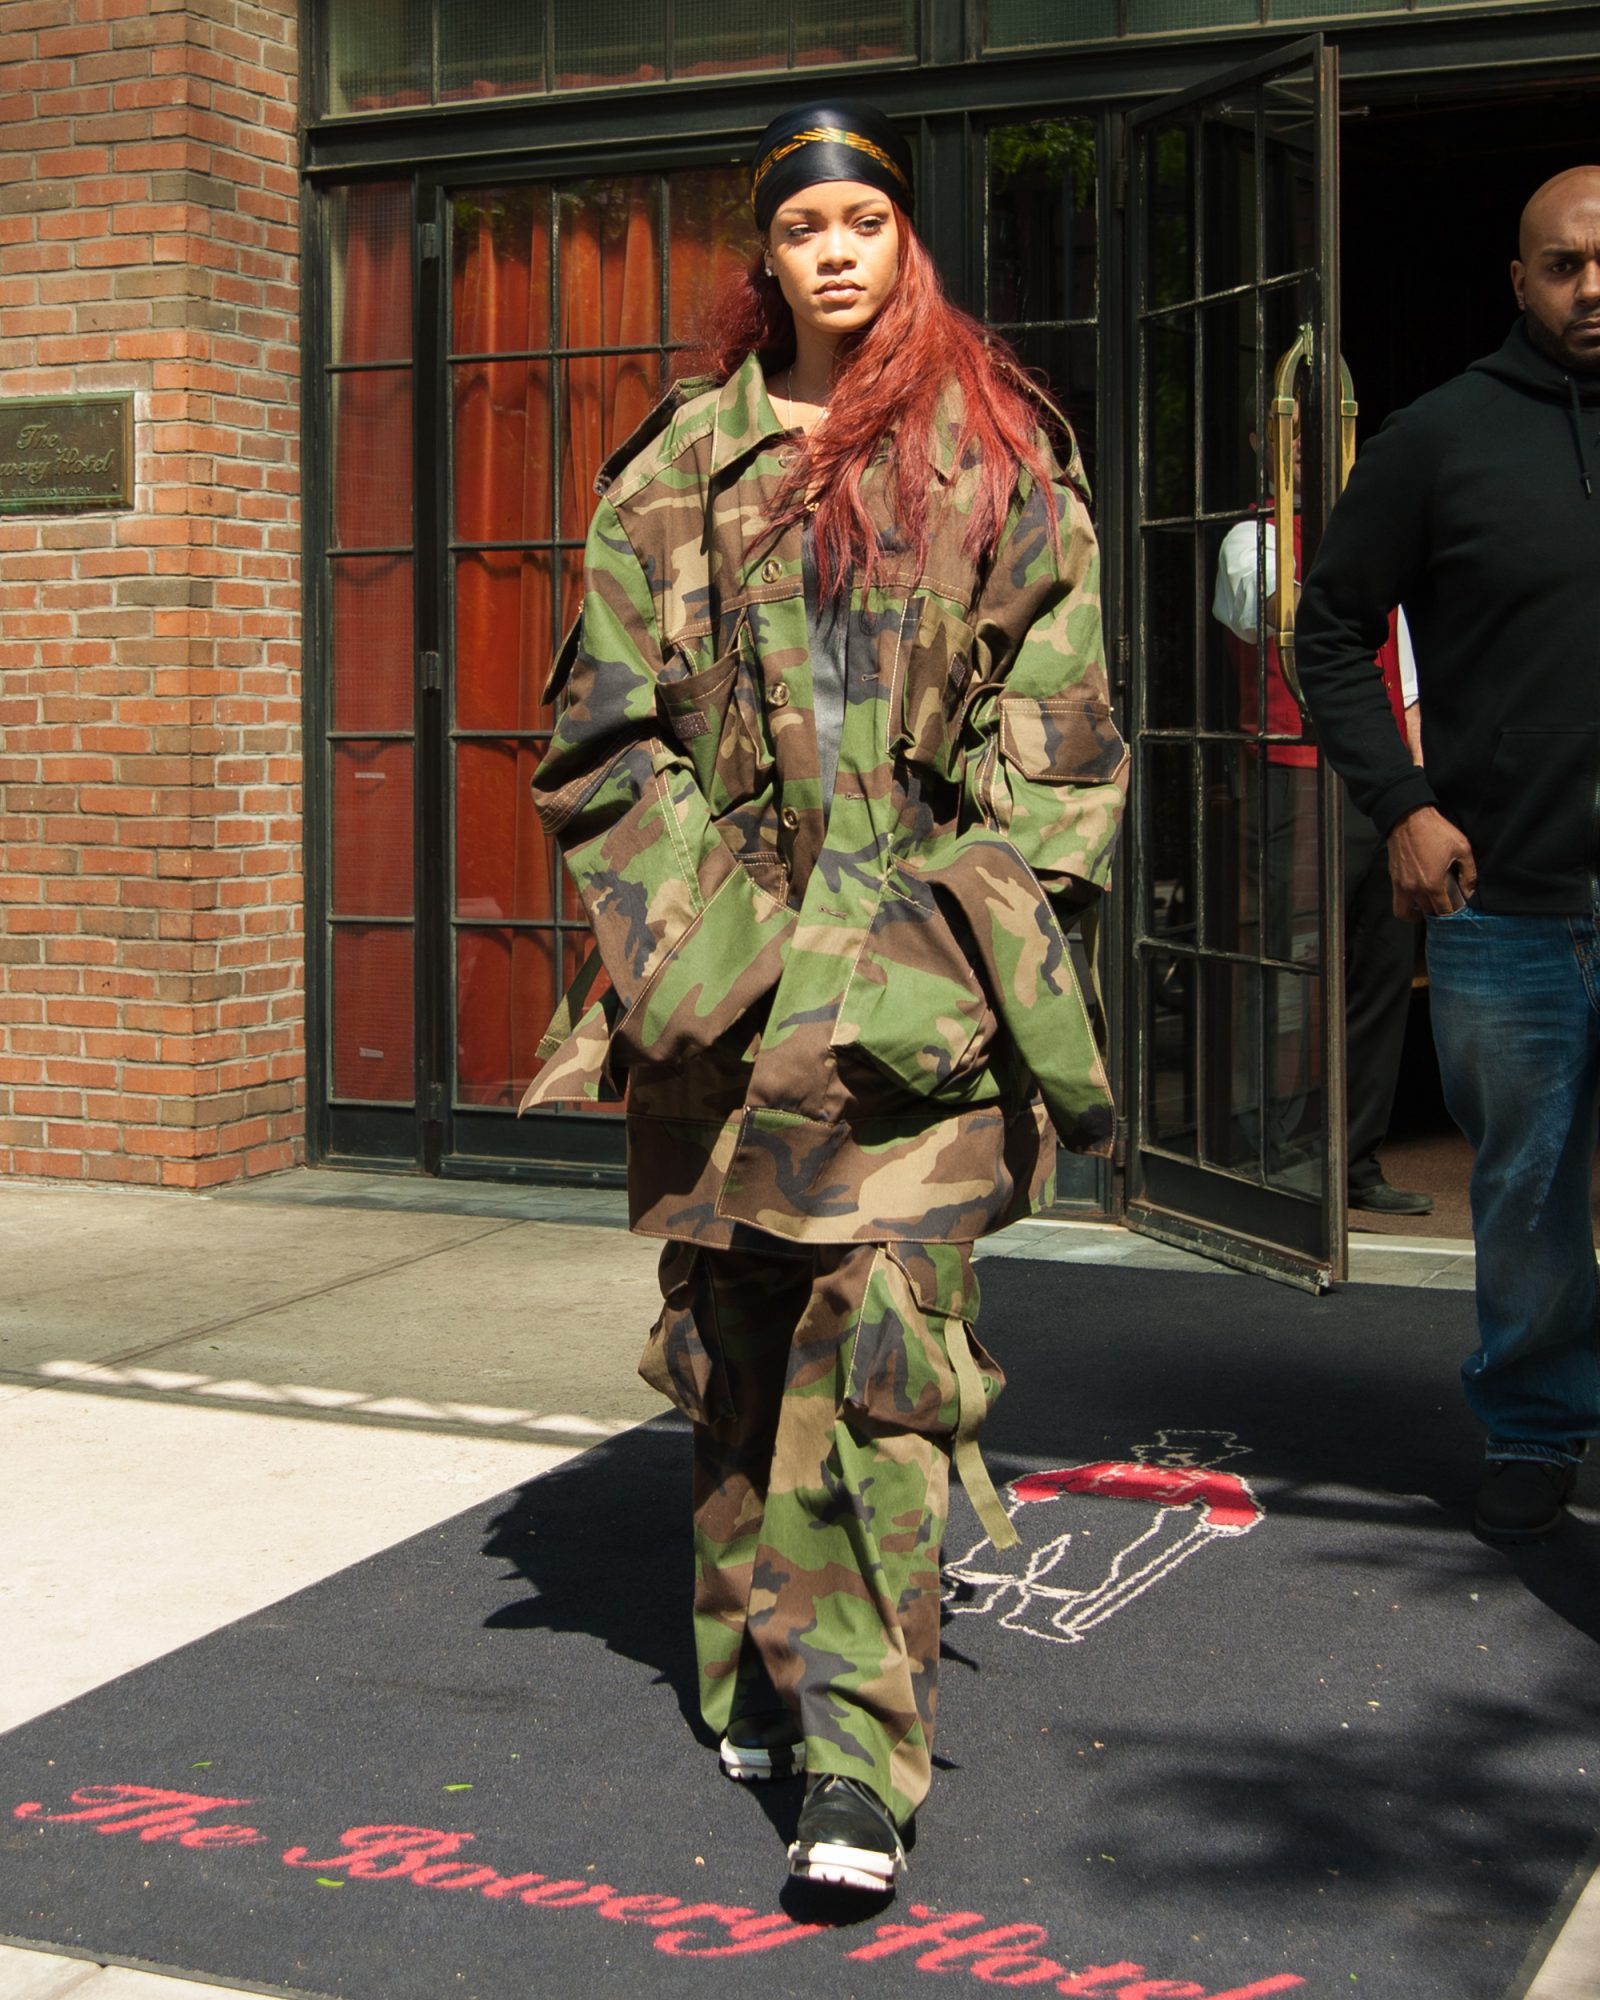 Rihanna leaving the Bowery Hotel wearing an all-camouflage outfit in Soho, New York City